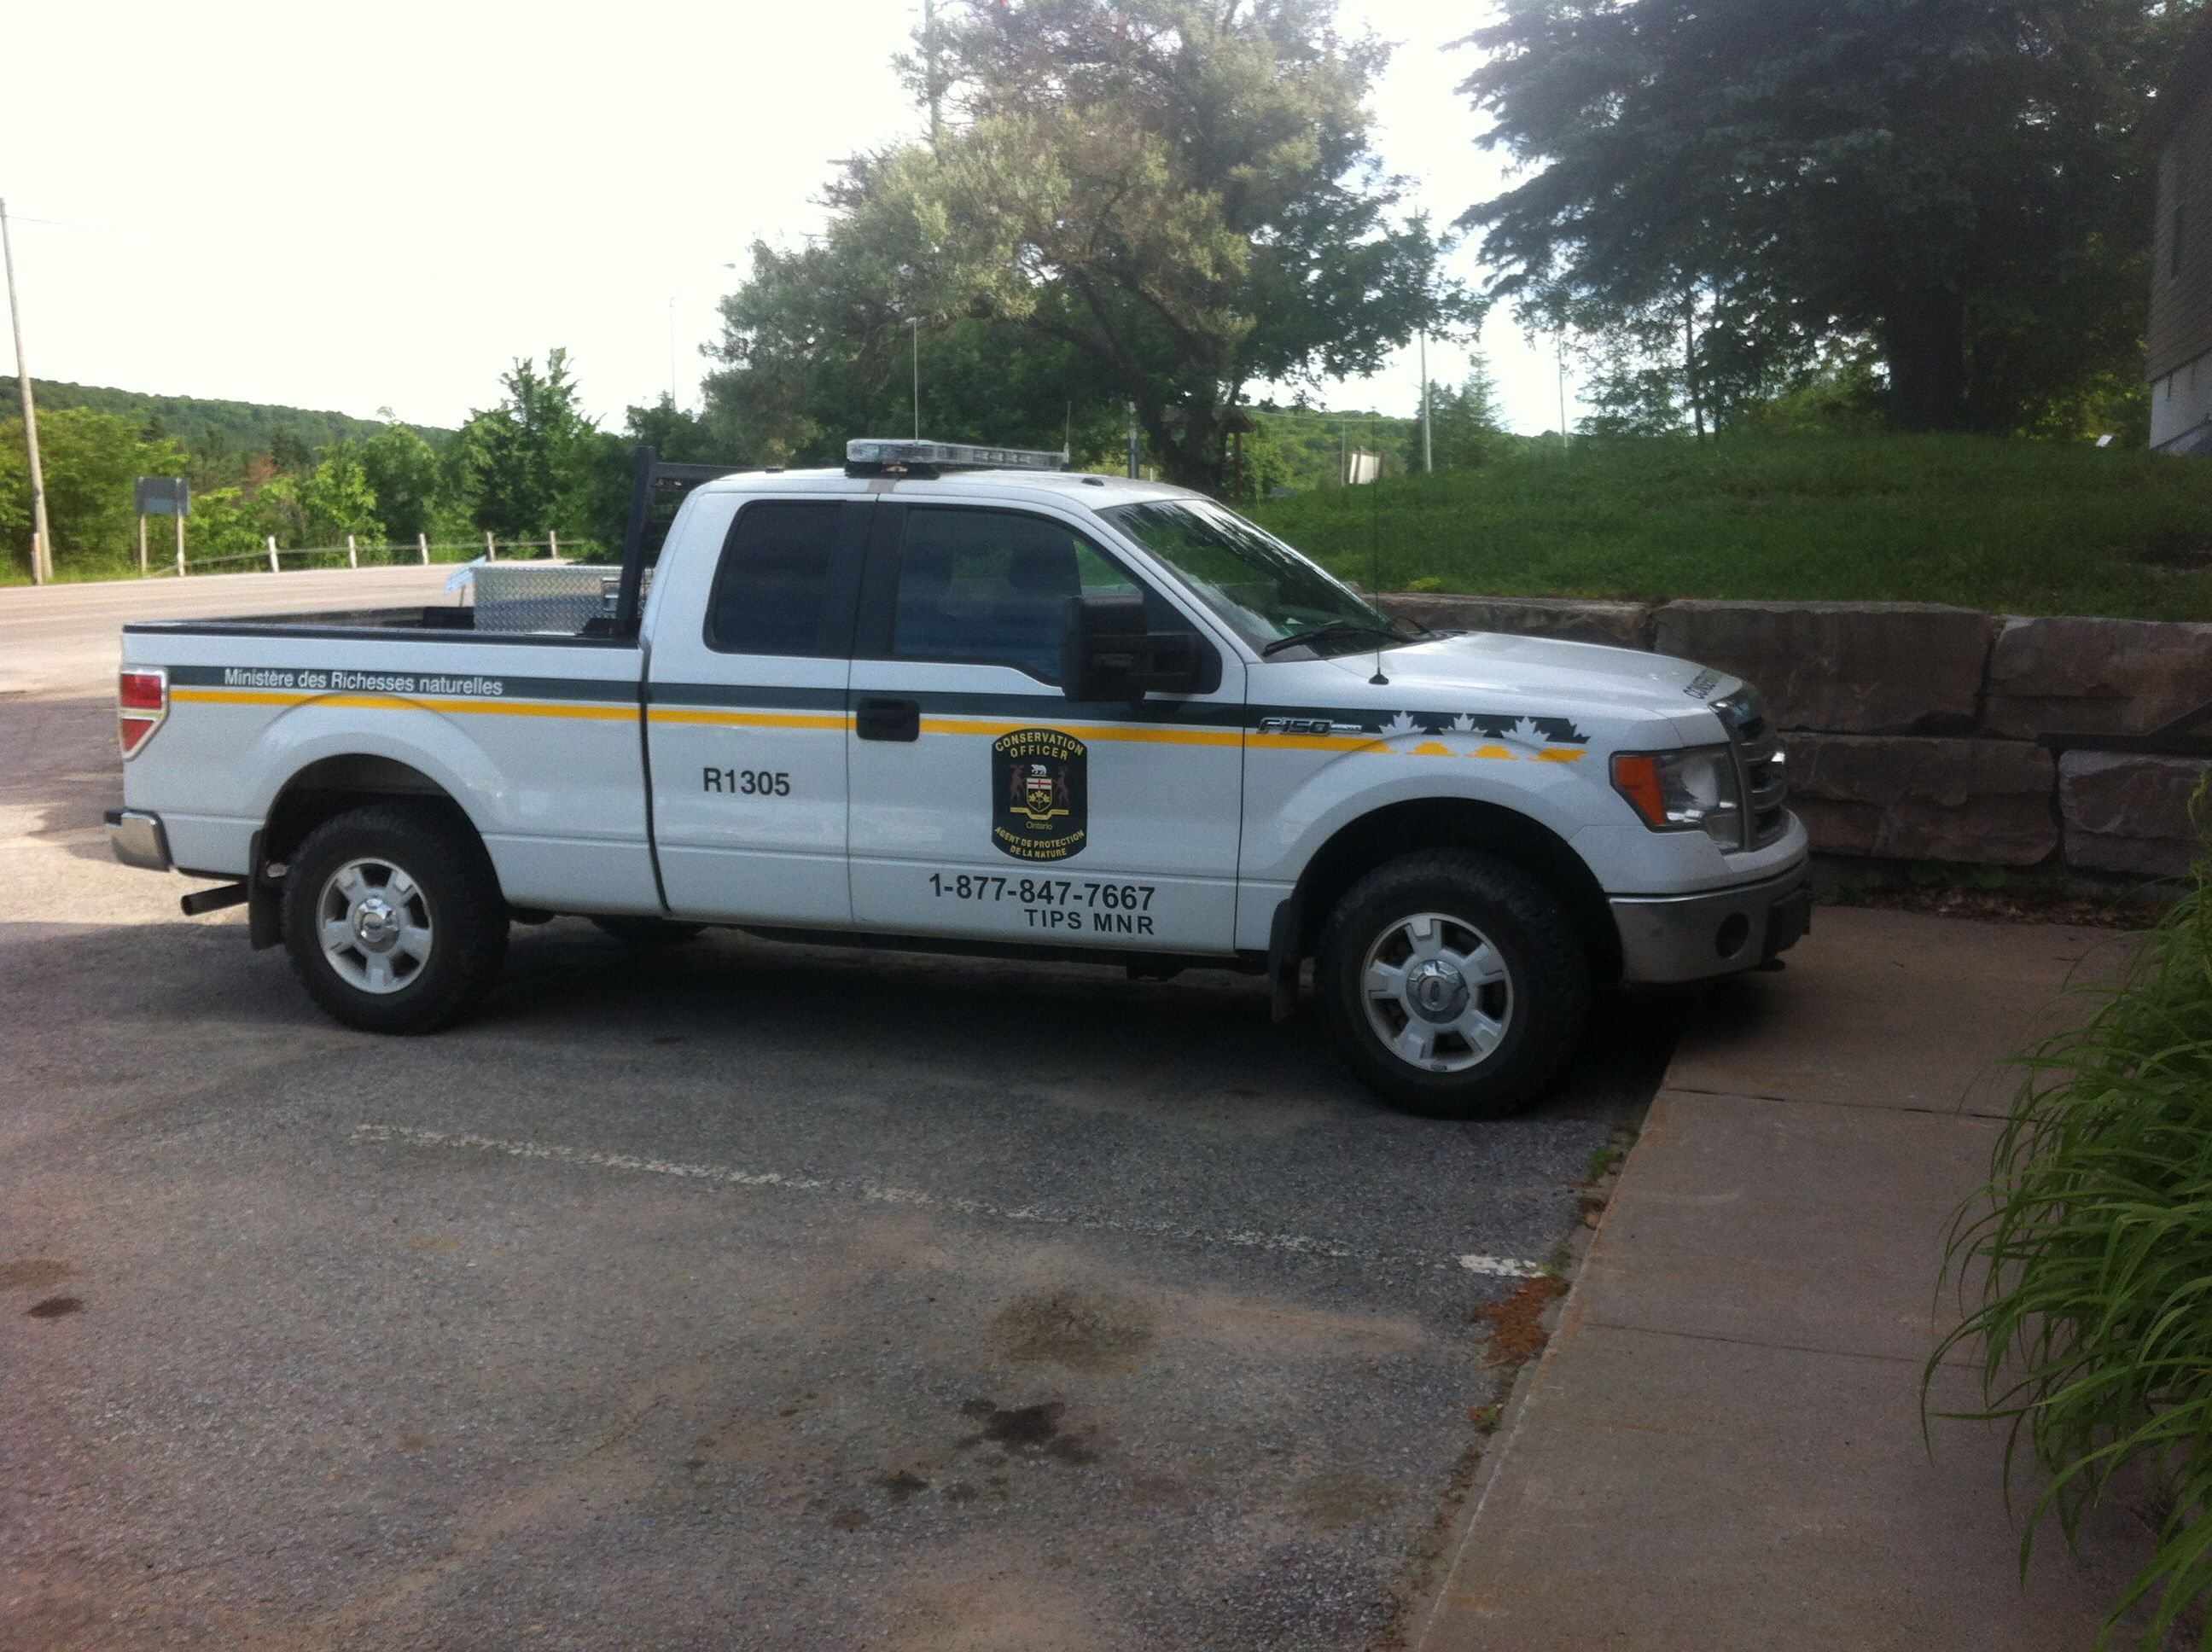 Performance Ford Bountiful >> Mnr conservation officer ford f150 | Law enforcement stuff | Monster trucks, Trucks, Police cars